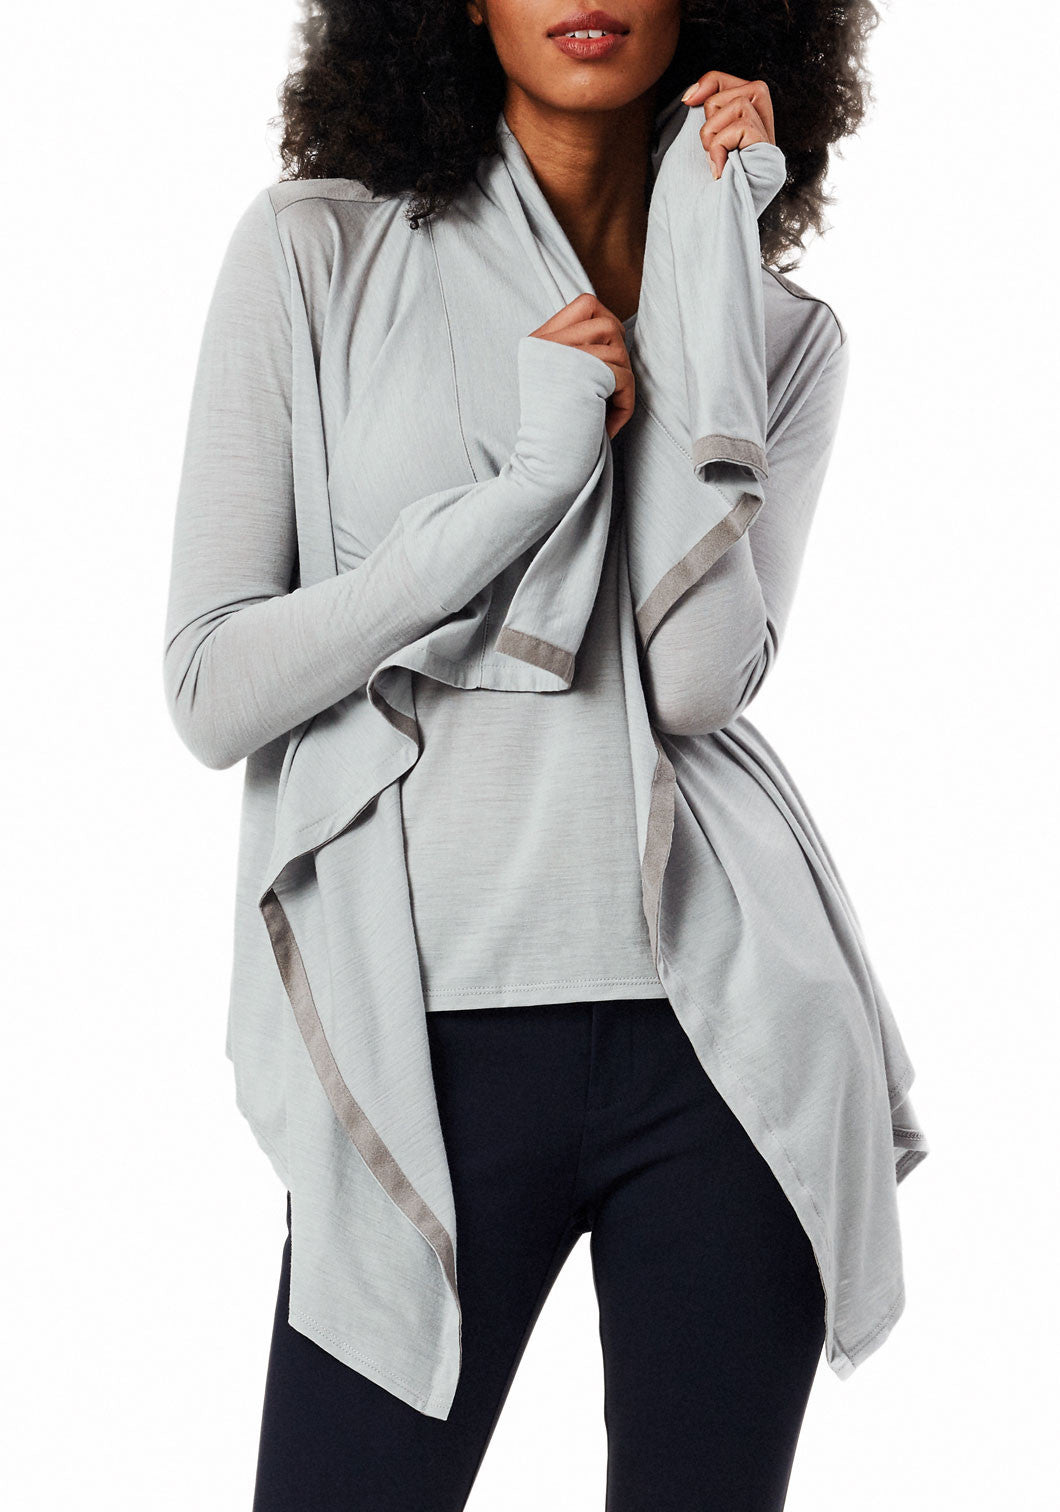 24/7 Pants Midnight Navy & Good-to-Go Cardi Mist Grey Combo Pack